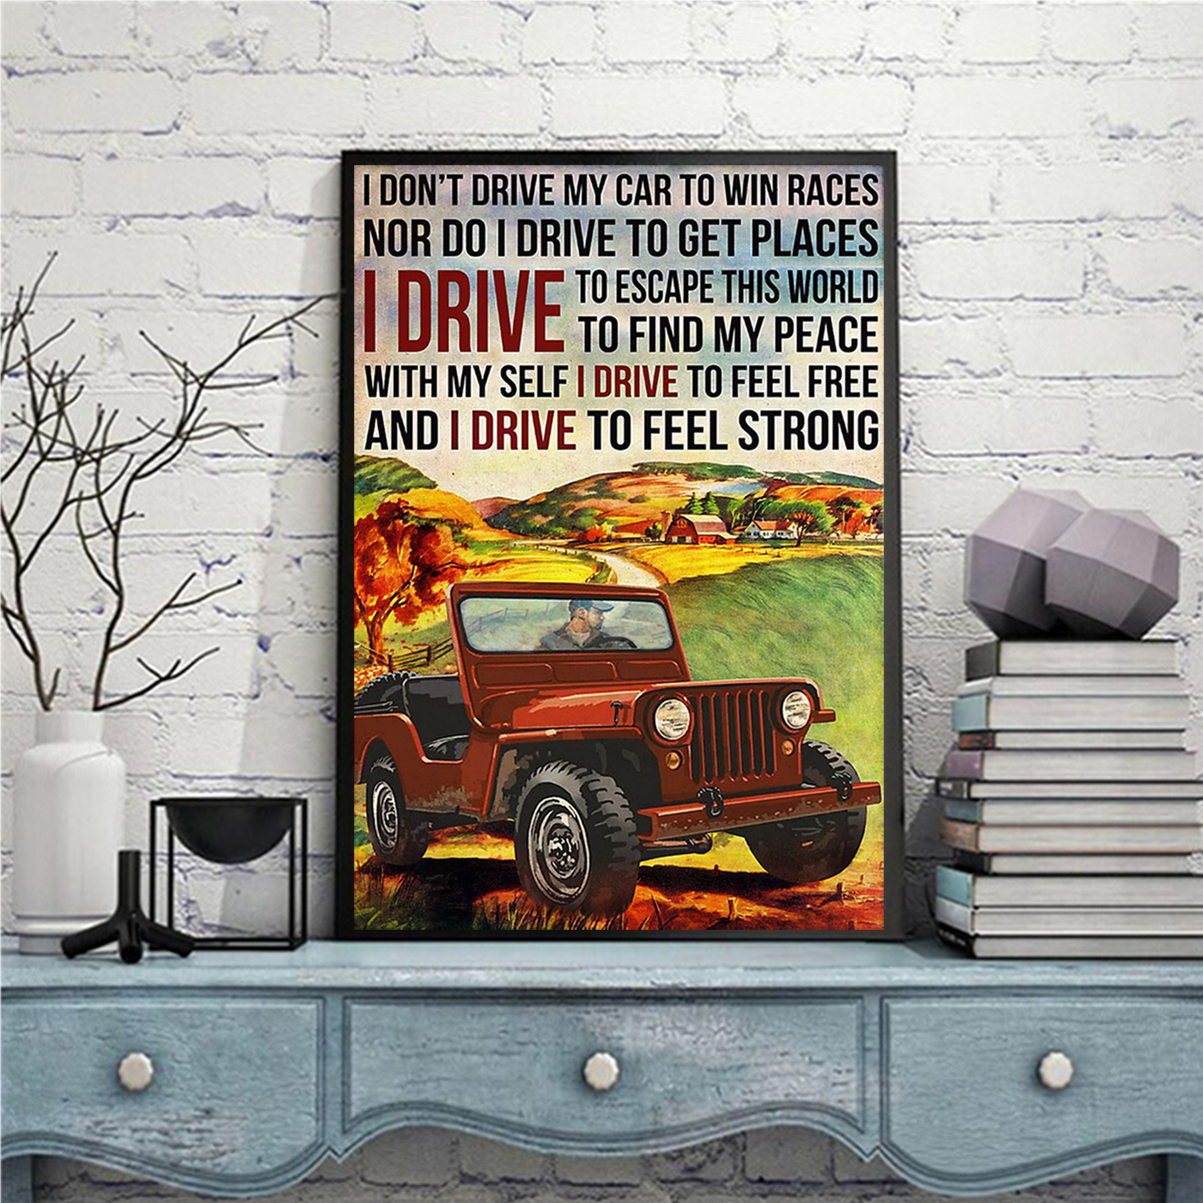 Off-road I don't drive my car to win races poster A3